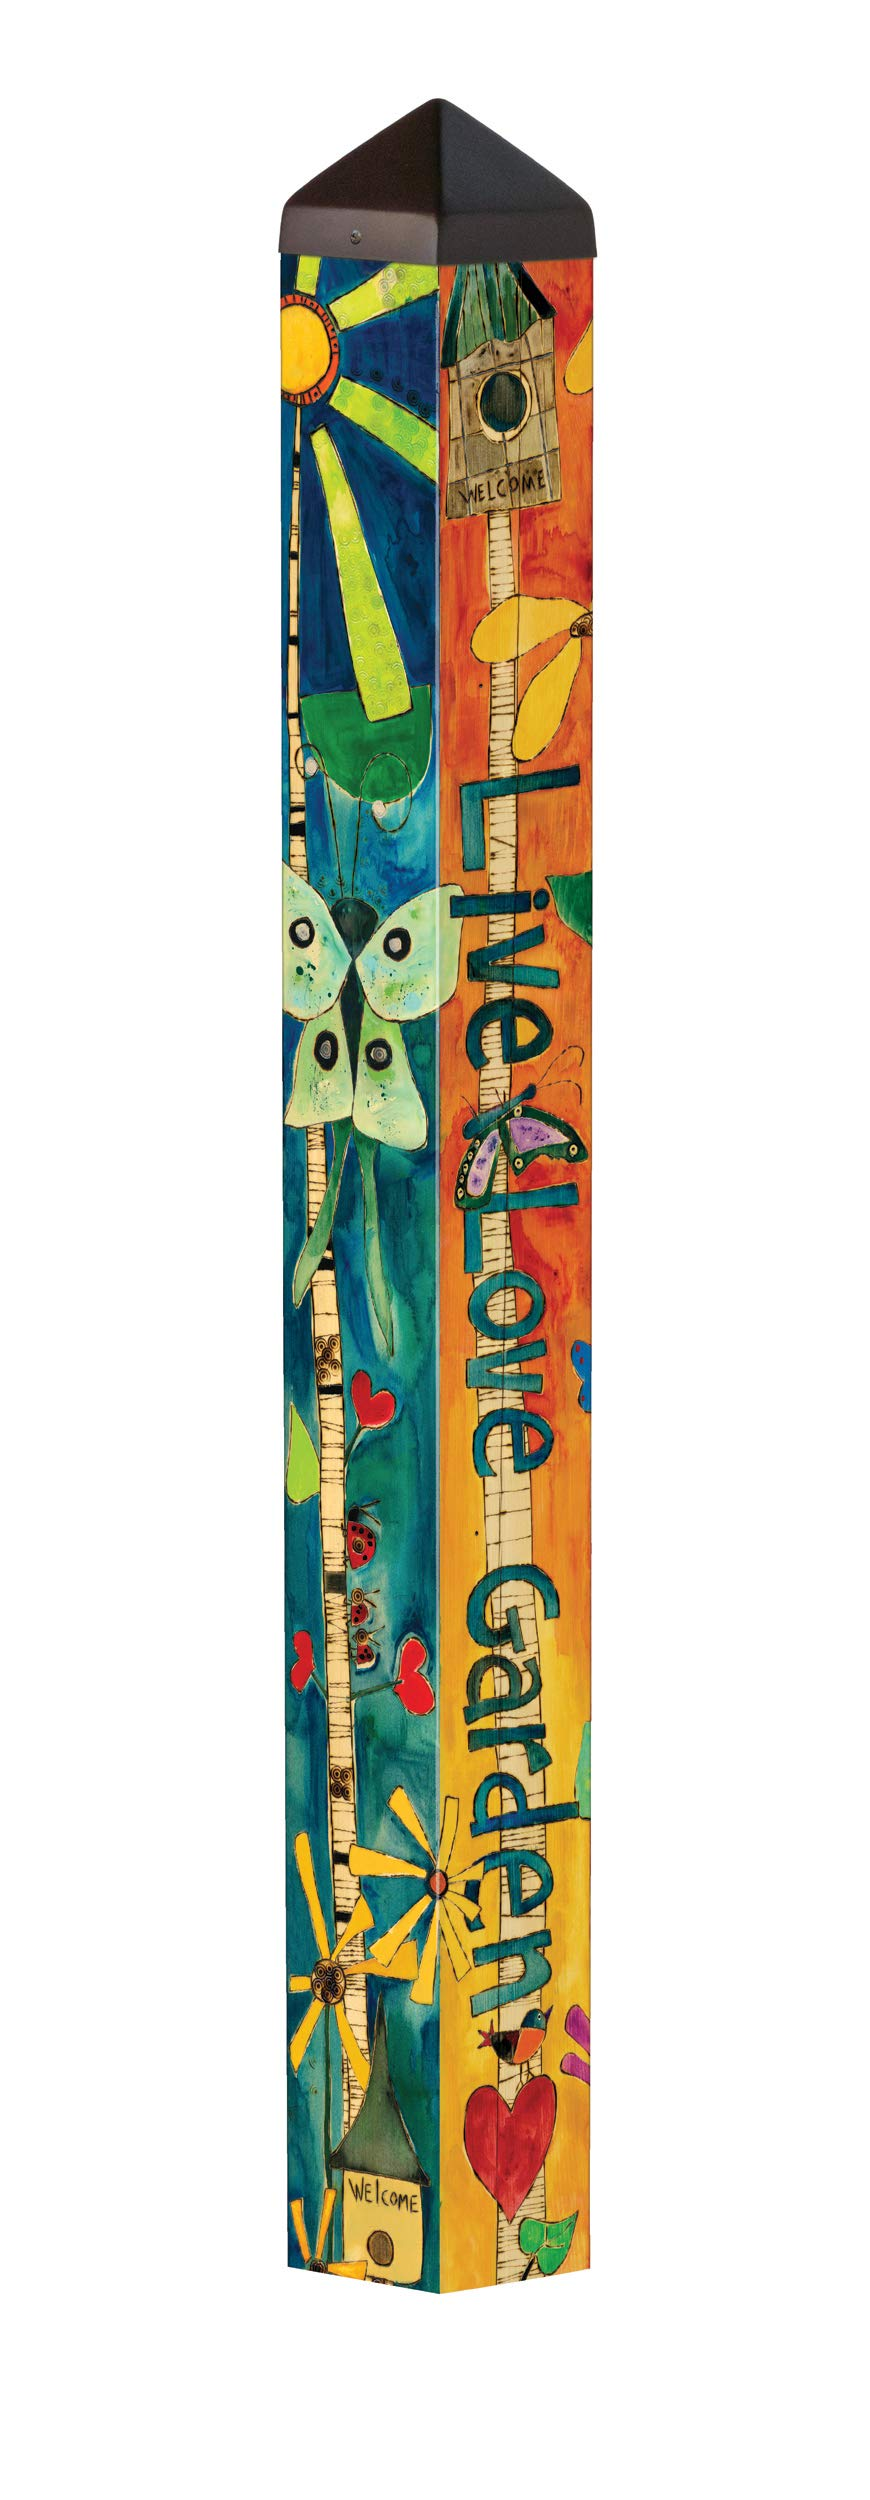 Studio M Love Garden Art Pole Bold Floral Outdoor Decorative Garden Post, Made in USA, 40 Inches Tall by Studio M (Image #2)